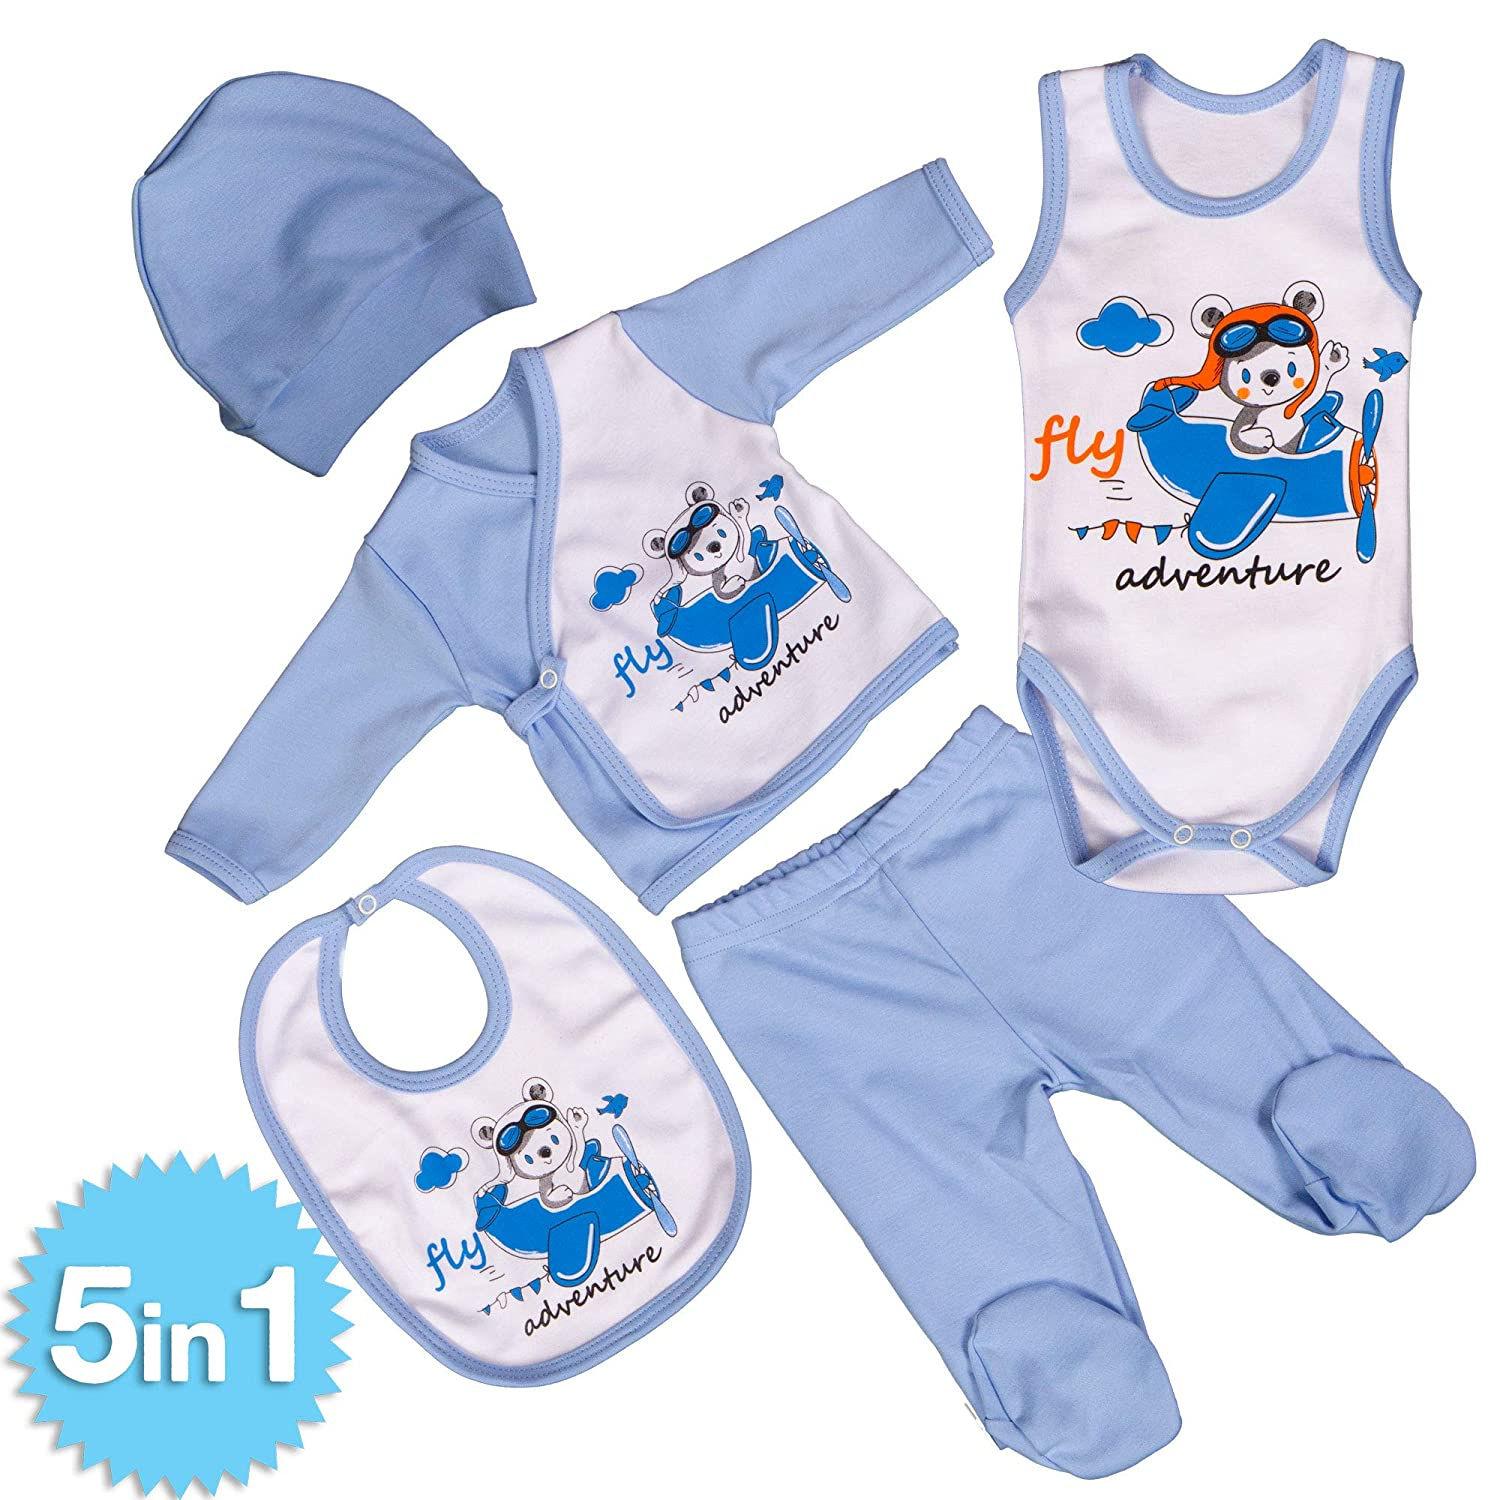 QAR7.3 Newborn Baby 5pcs Cotton Gift Clothing Set Essentials Bundle 0-3 Months